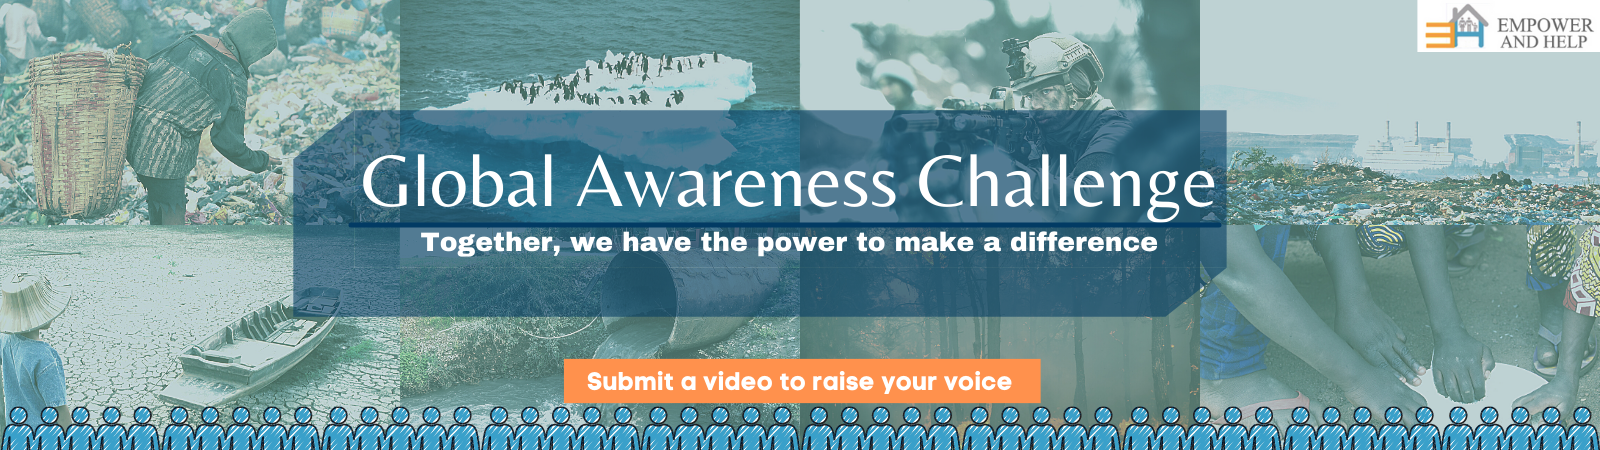 Empower And Help Global Awareness Challenge 2021